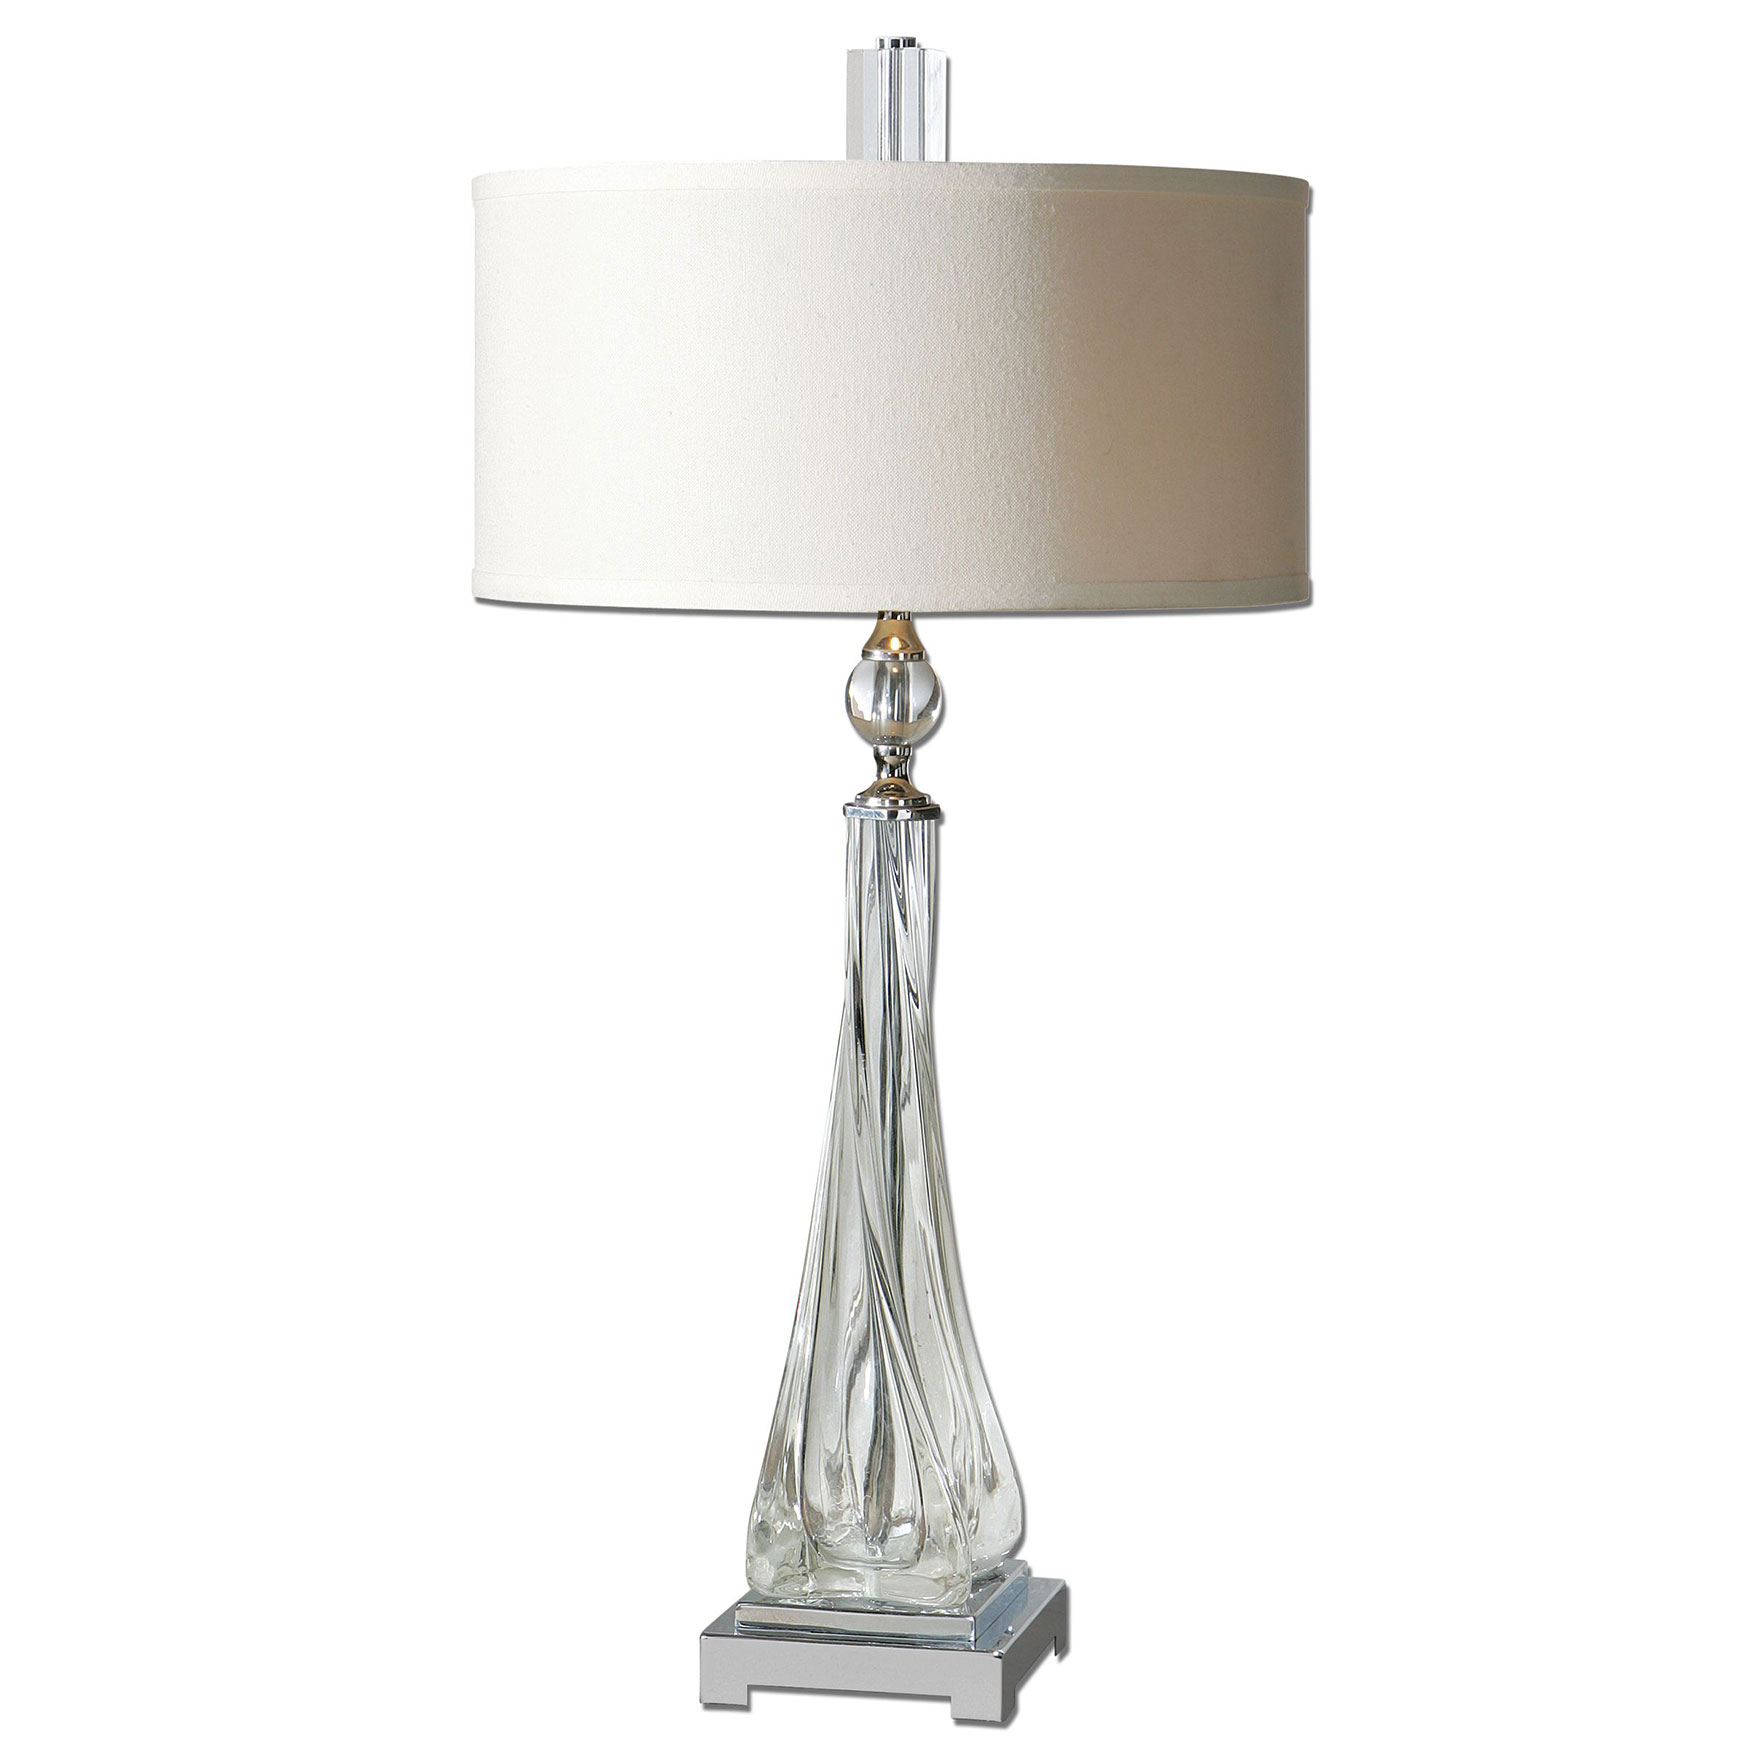 Grancona Twisted Glass Table Lamp, NICKEL